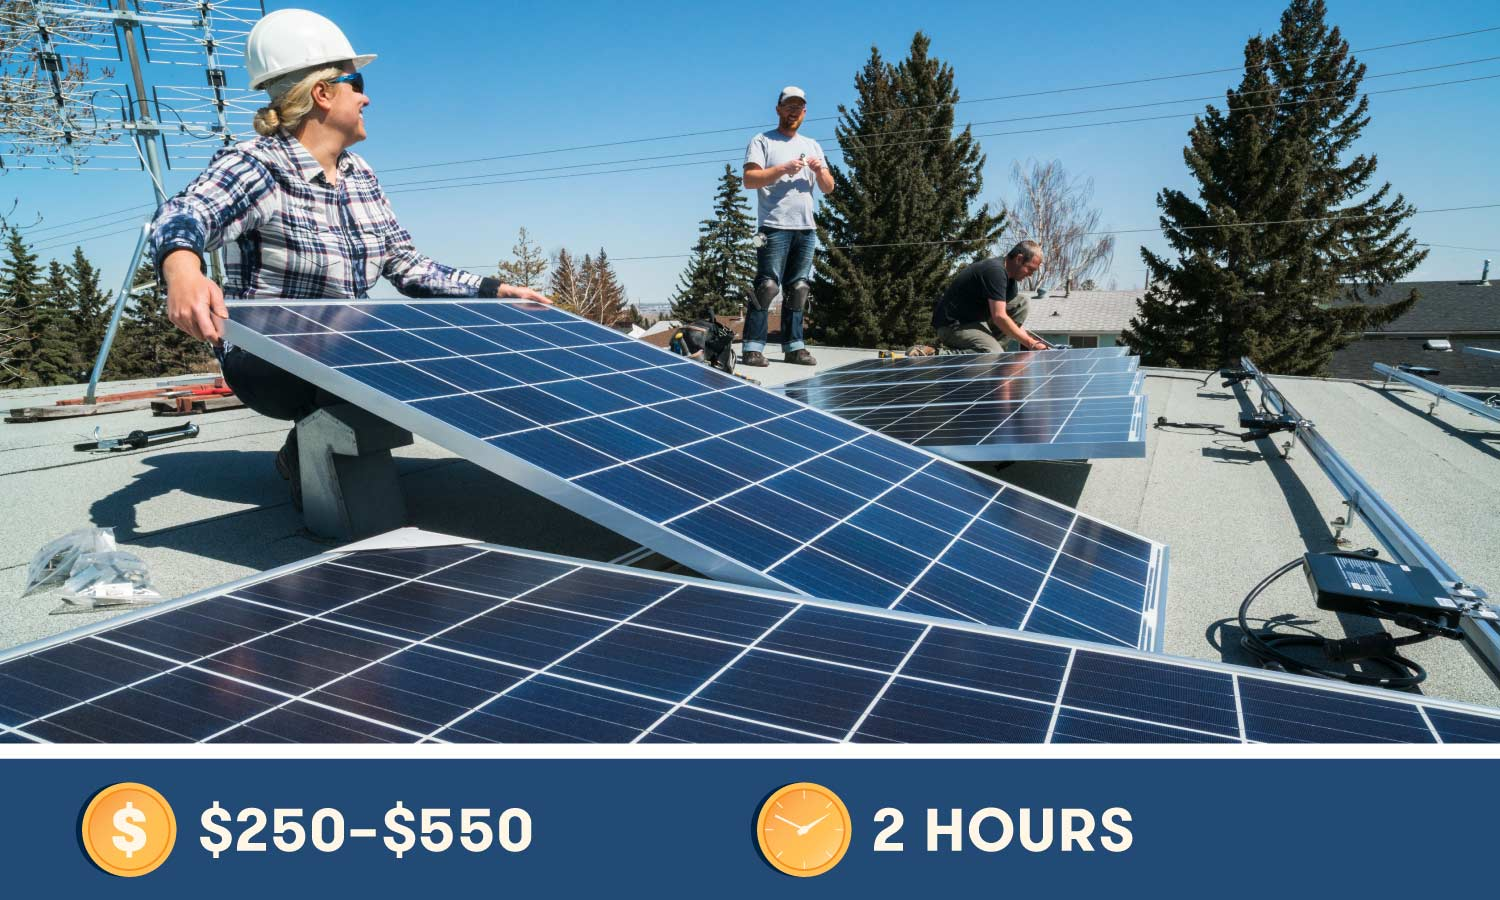 Green Business Certification (LEED) takes $250-$550 and 2 hours to get certified